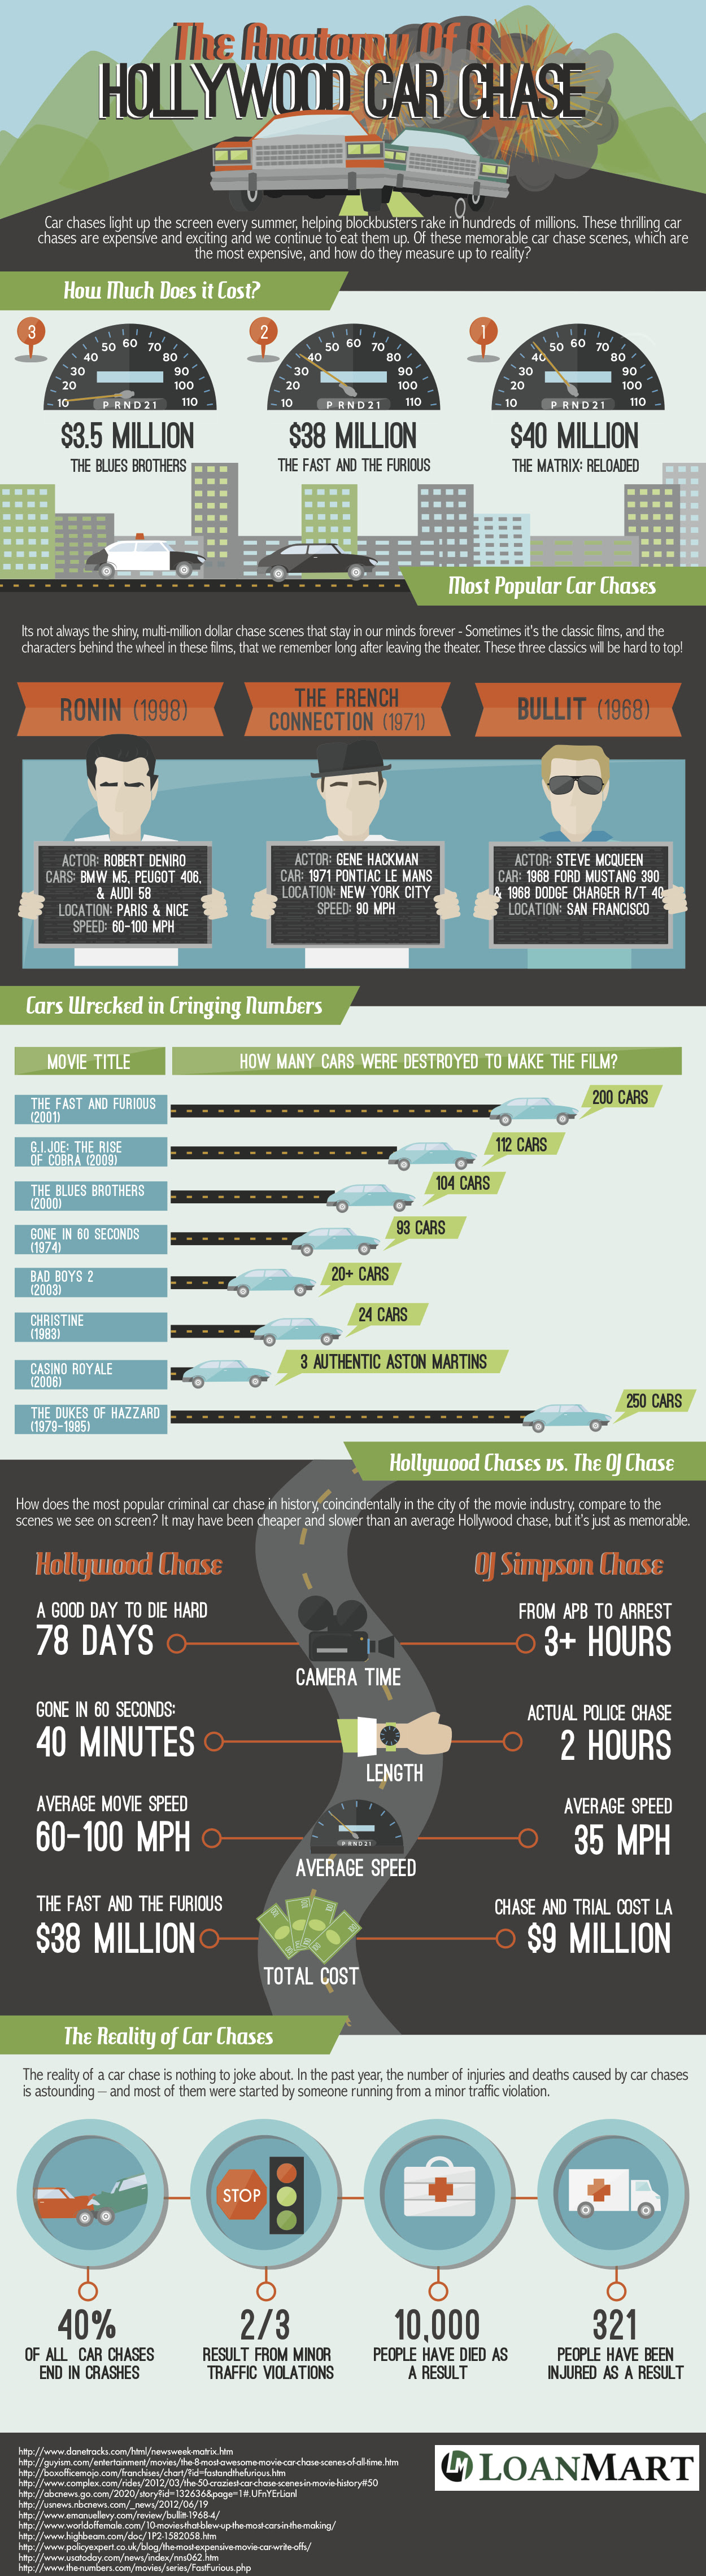 The Anatomy of a Hollywood Car Chase Infographic by 800LoanMart